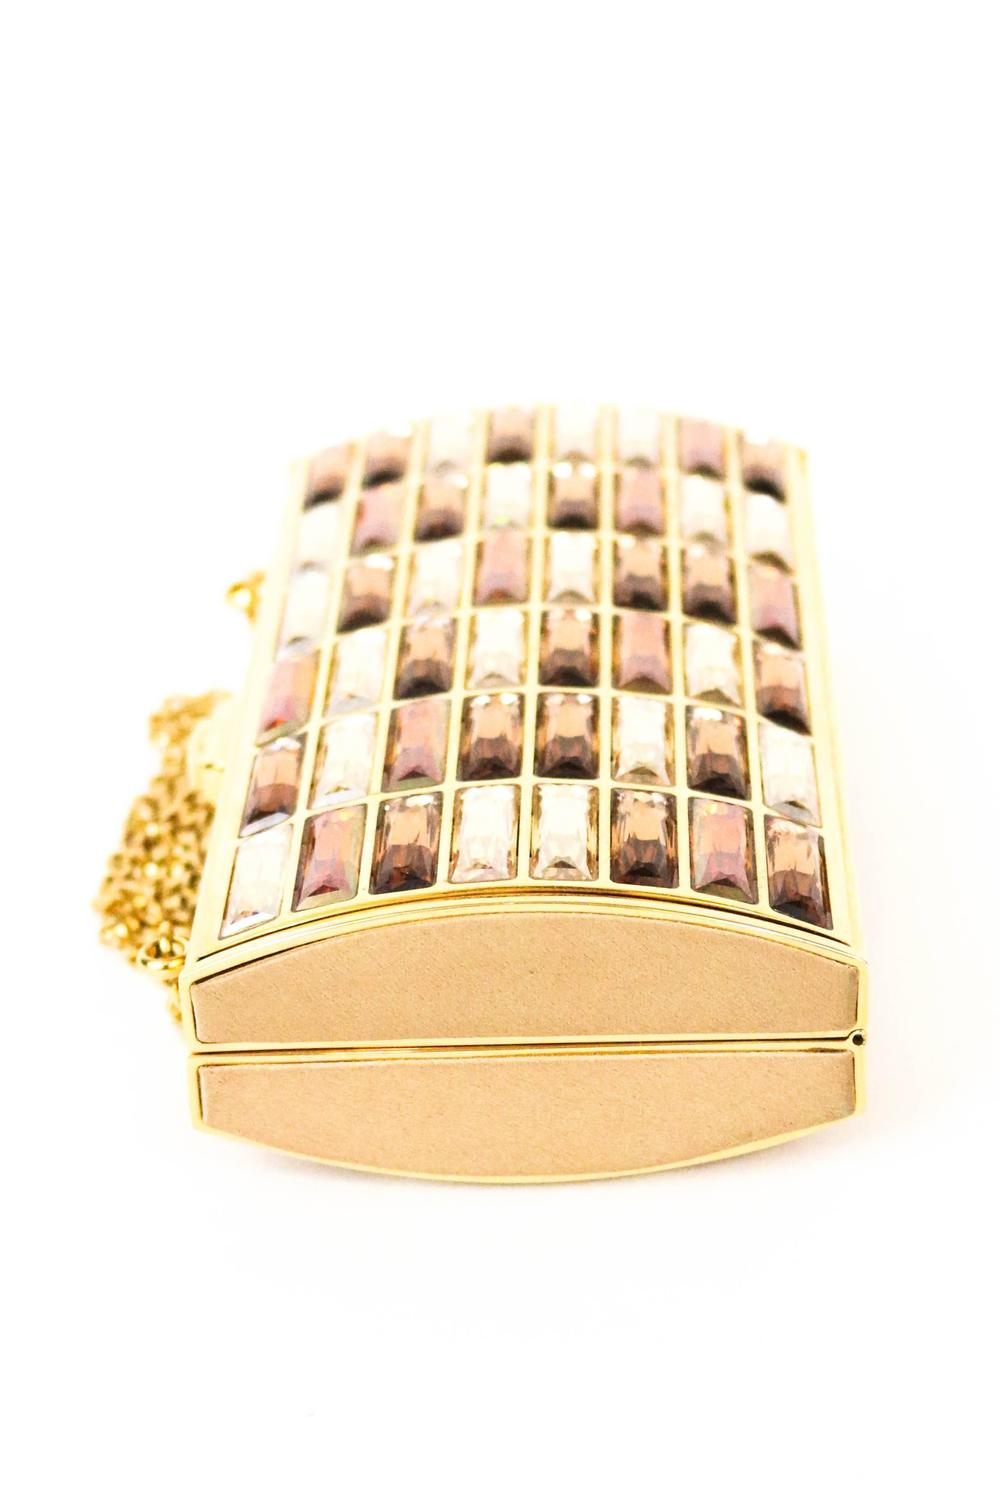 Judith Leiber Bronze Crystal Goddess Clutch For Sale at ...